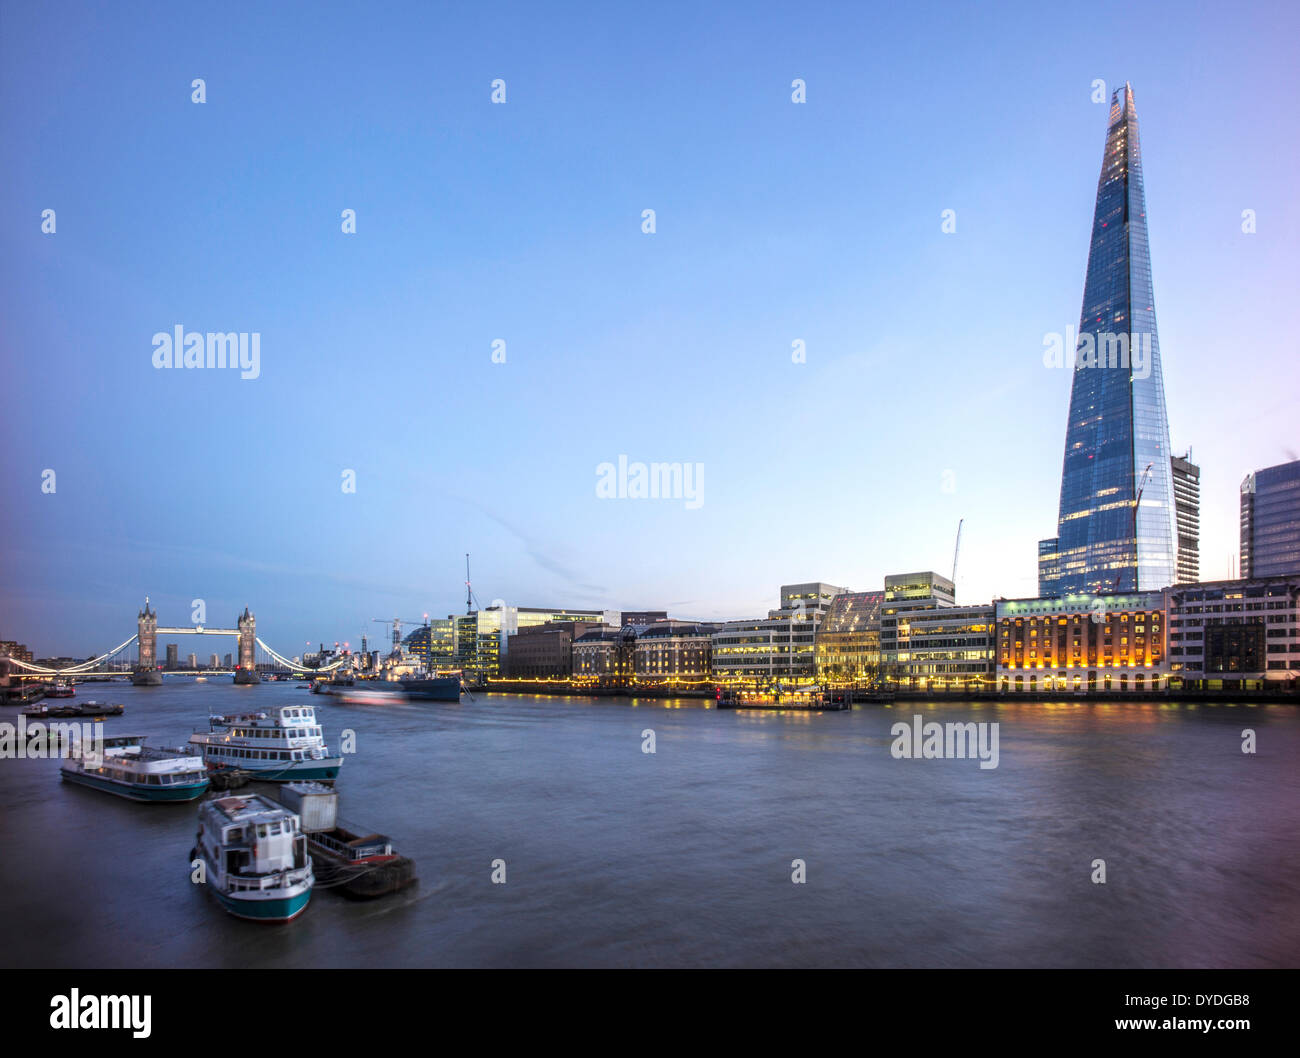 The Shard with The River Thames and Tower Bridge. - Stock Image